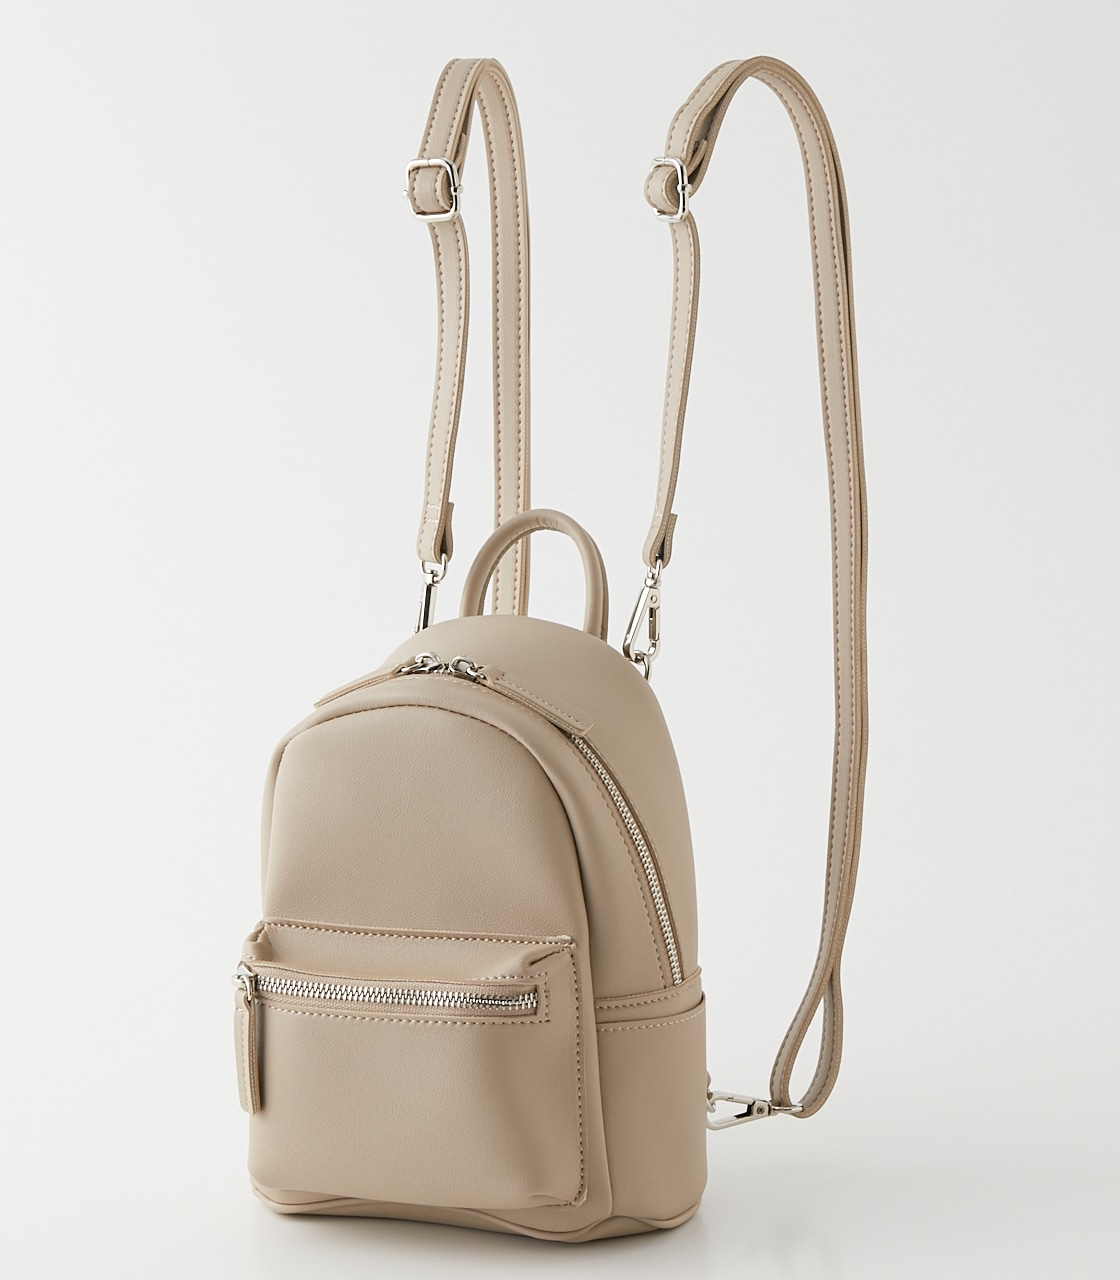 2WAY MINI BACKPACK/2WAYミニバックパック 詳細画像 L/BEG 1